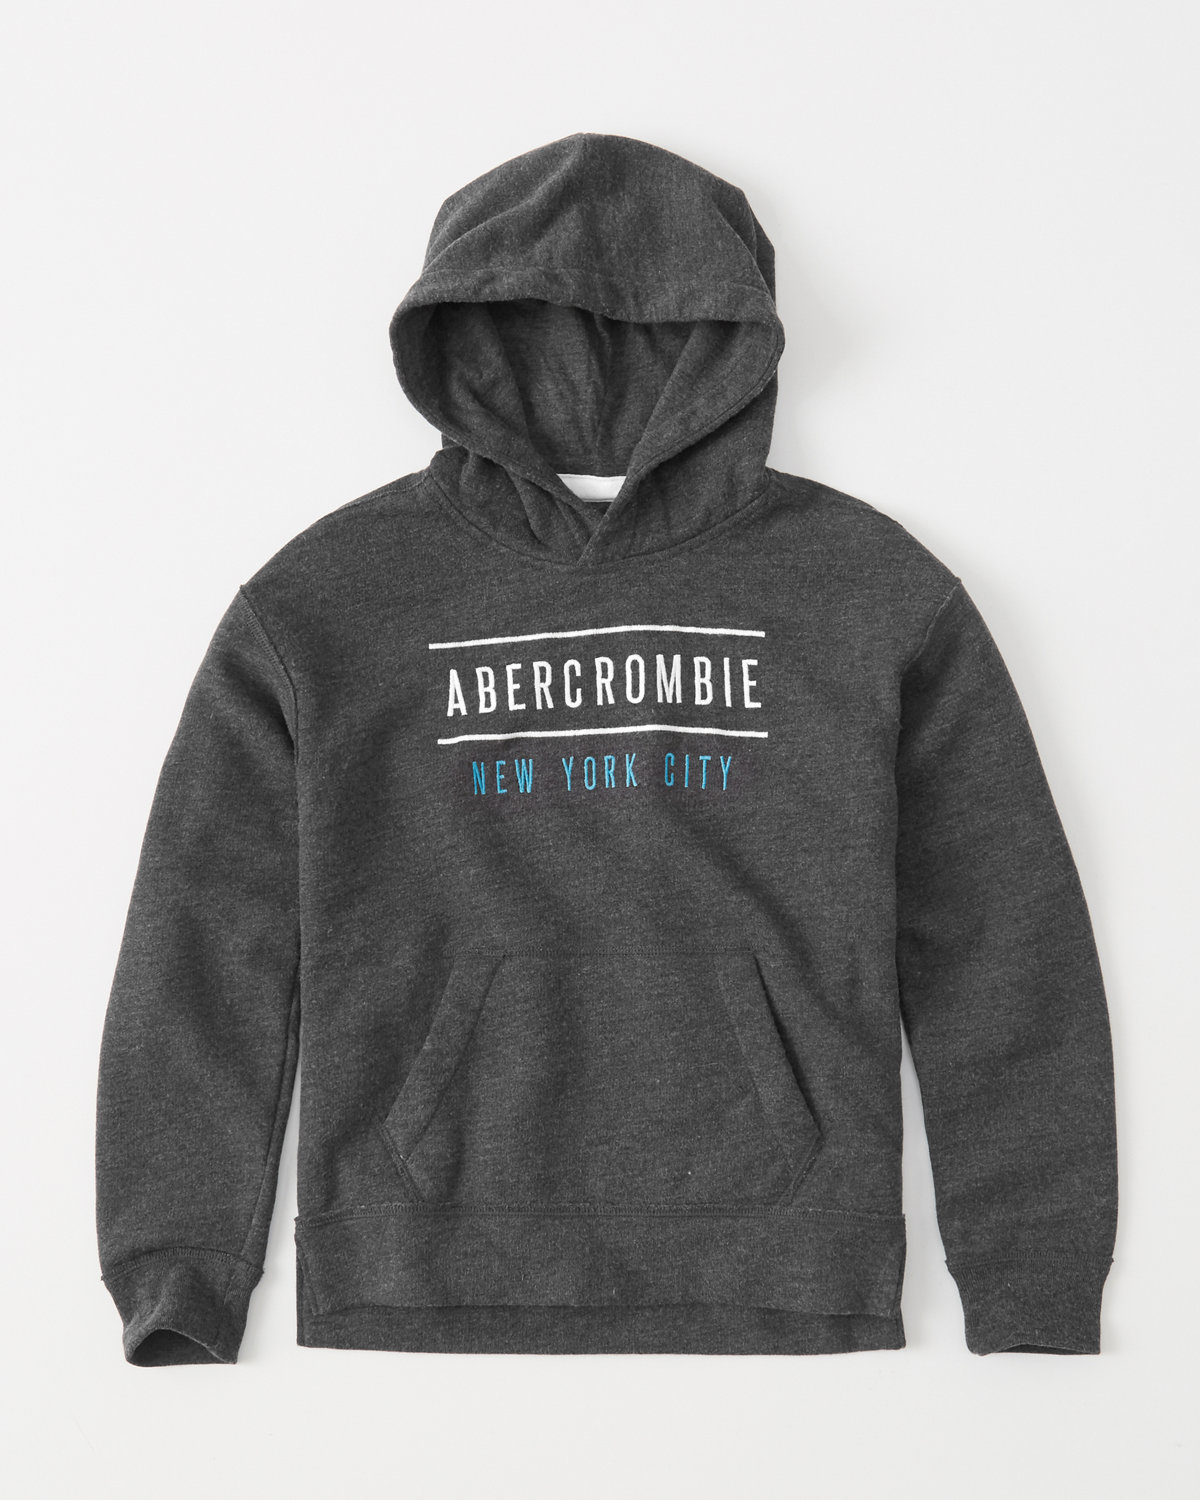 Boys Abercrombie light weight hoodie size 5/6 in great shape!! Boys Abercrombie gray shirt size 5/6 one of letters has a string pulled out a little.